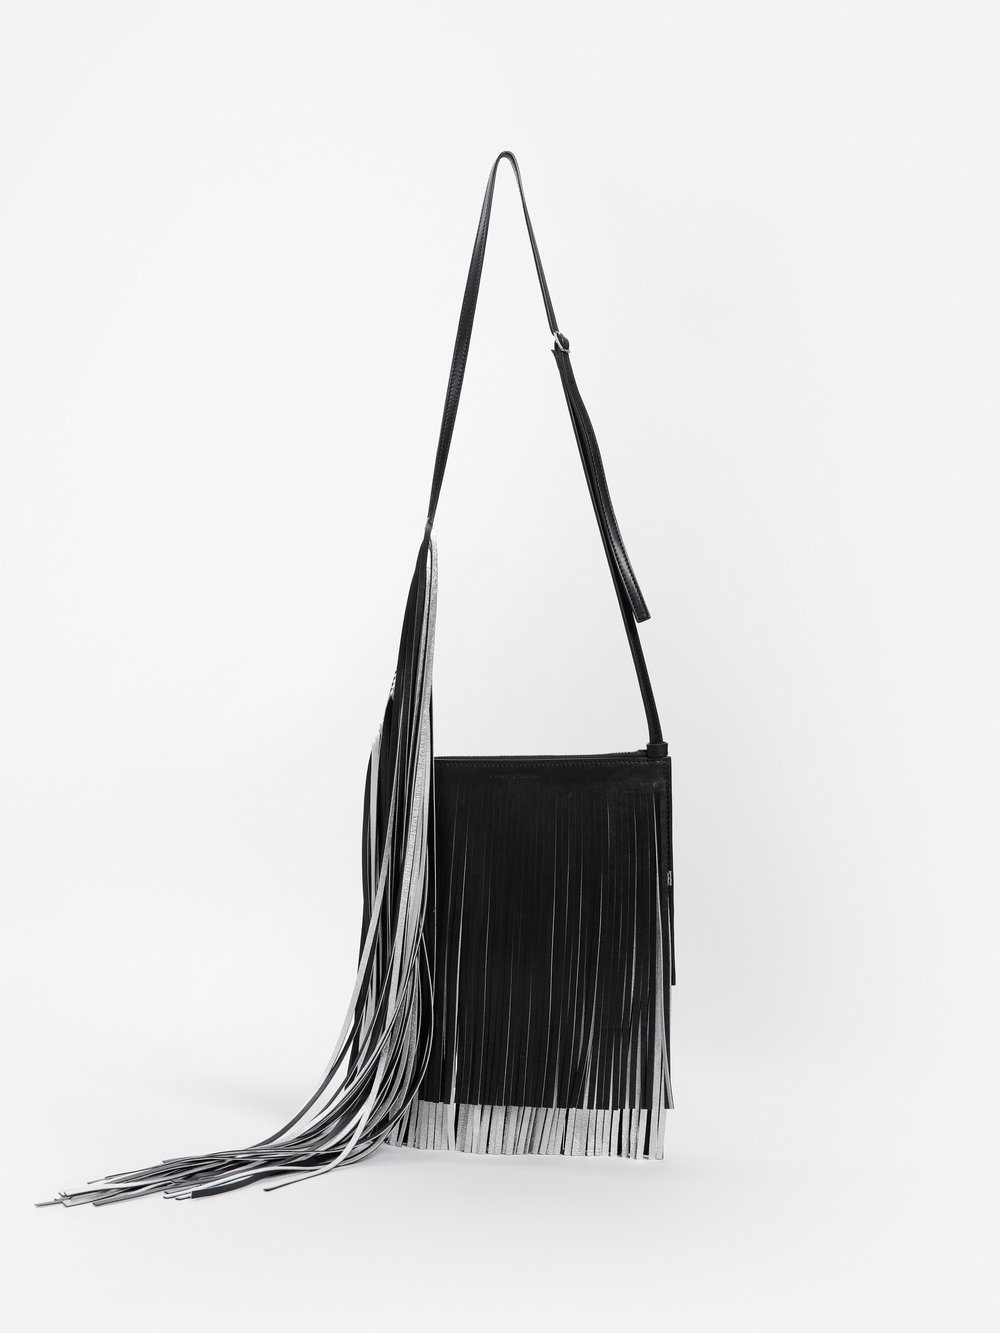 Calvin Klein 205w39nyc Crossbody CALVIN KLEIN 205W39NYC BLACK CROSSBODY BAG WITH BLACK AND SILVER FRINGES